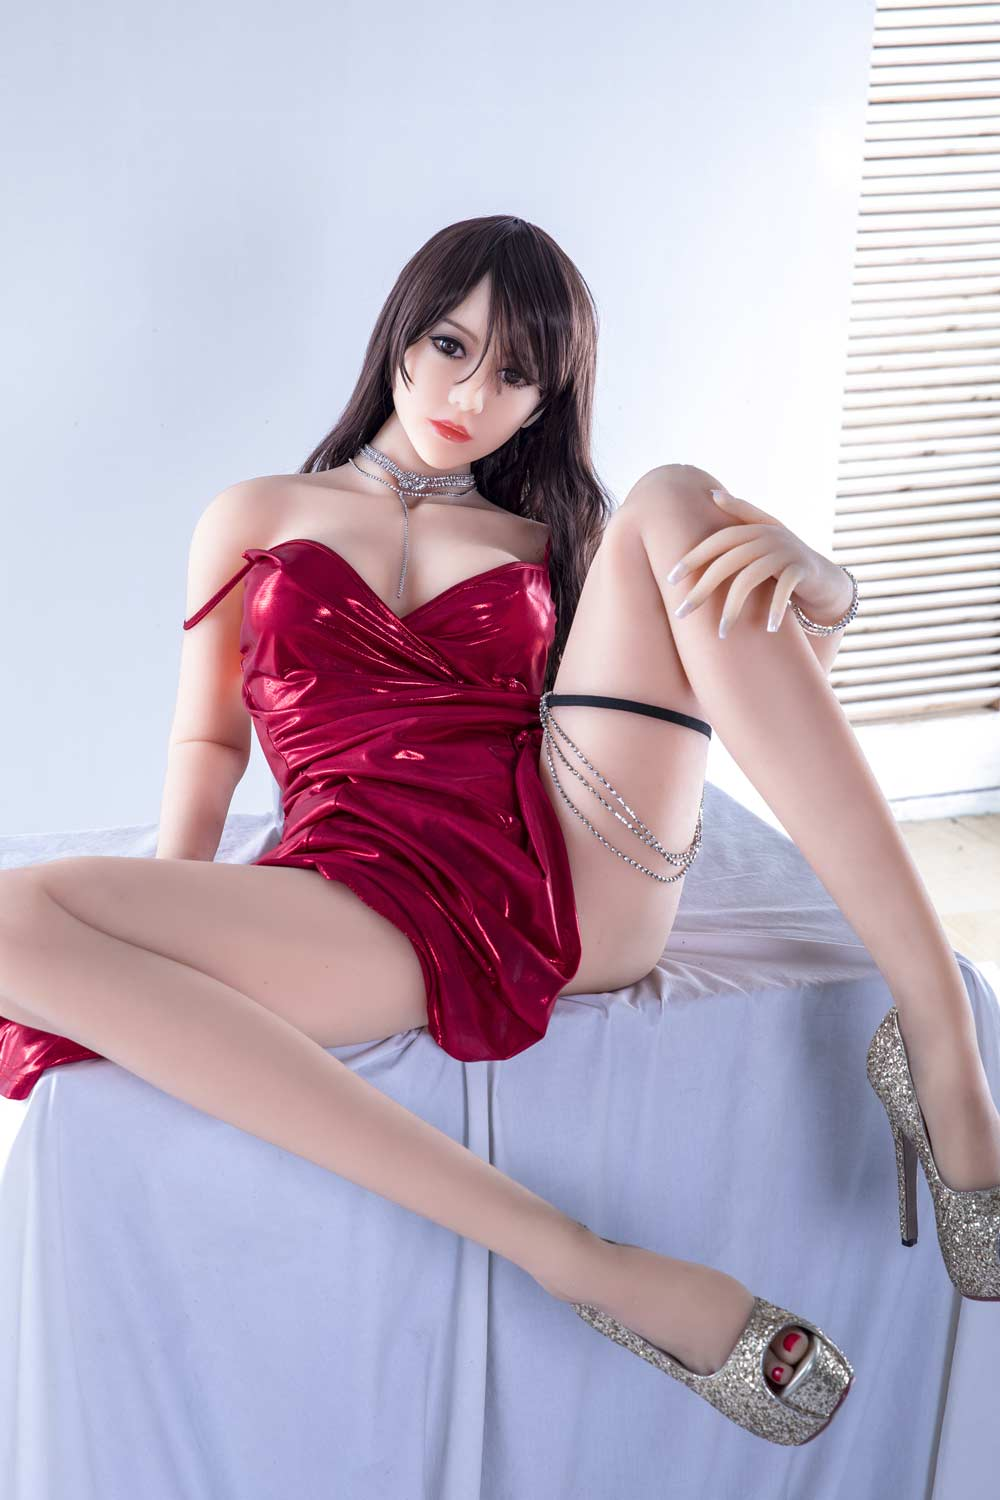 Sex doll with spread legs and hands touching thighs